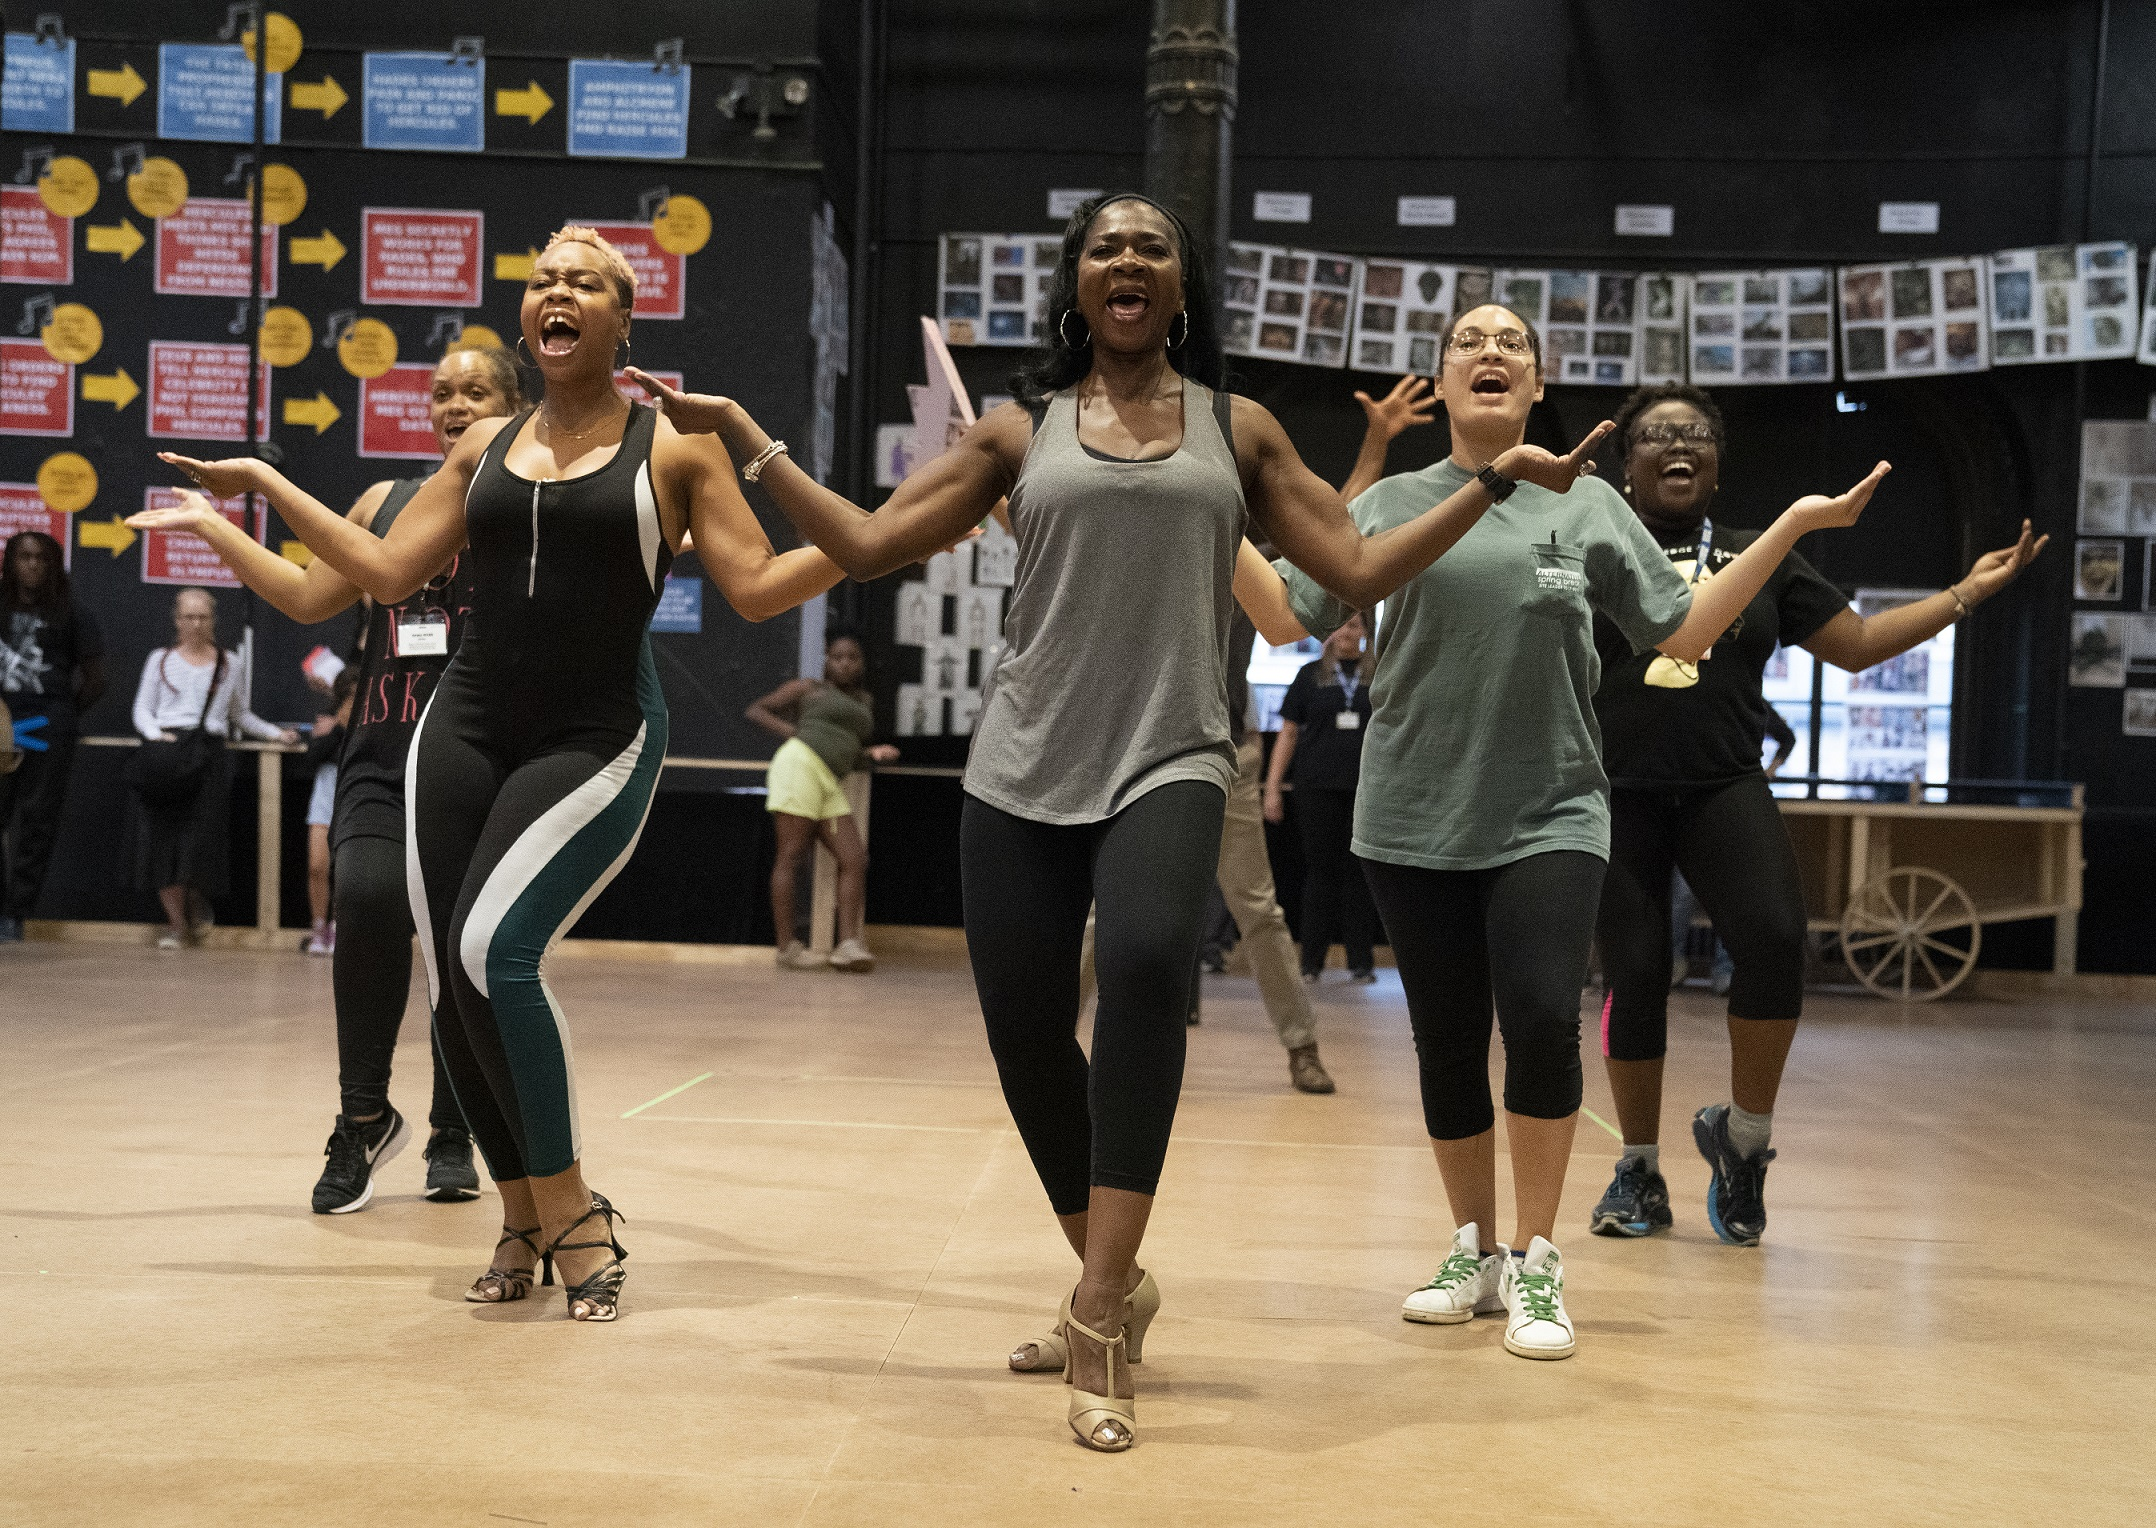 Rema Webb, Tamika Lawrence, Ramona Keller, Brianna Cabrera, and Tieisha Thomas in rehearsal for Public Works' Hercules, The Public Theater's free production, directed by Lear deBessonet, running at The Delacorte Theater in Central Park starting August 31. Photo credit: Joan Marcus.